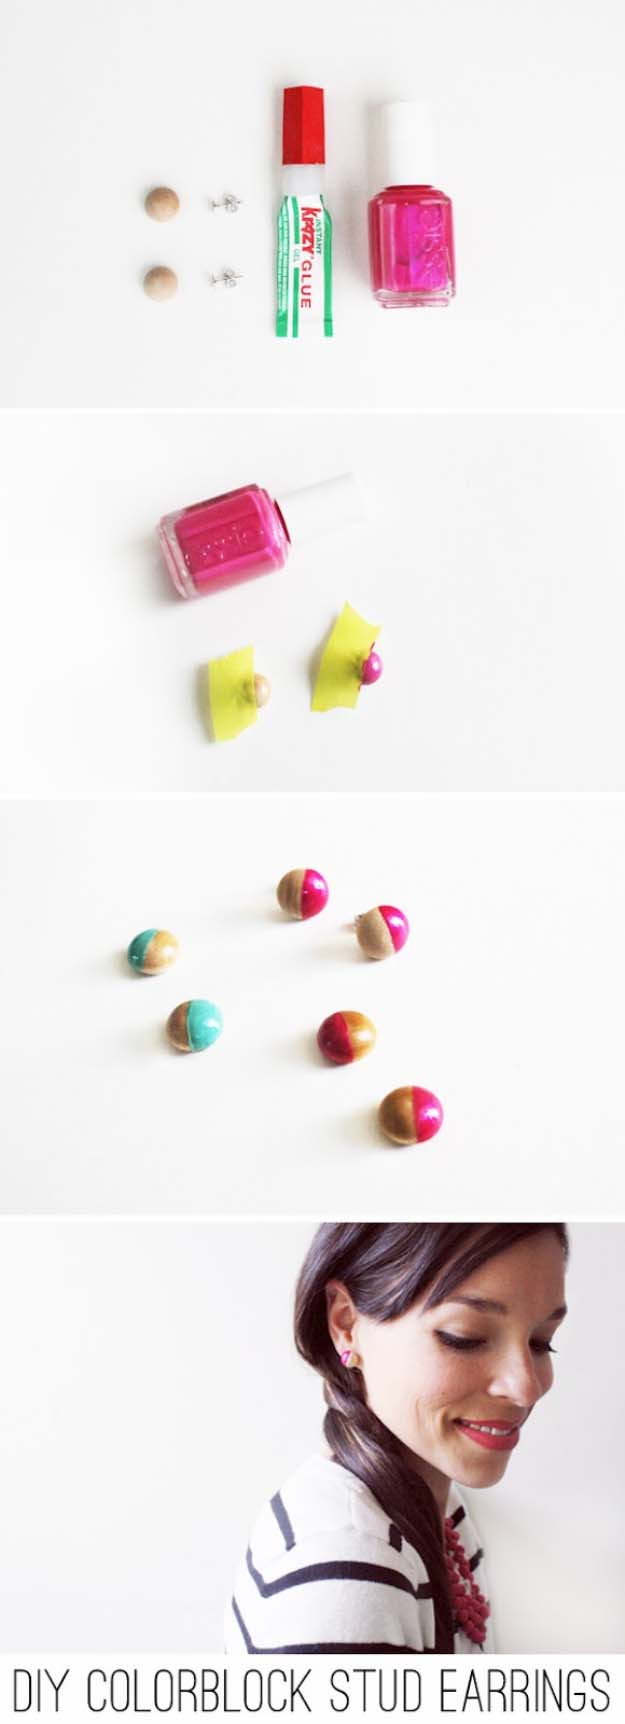 DIY Crafts Using Nail Polish - Fun, Cool, Easy and Cheap Craft Ideas for Girls, Teens, Tweens and Adults | Kate Spade Inspired Colorblock Stud Earrings